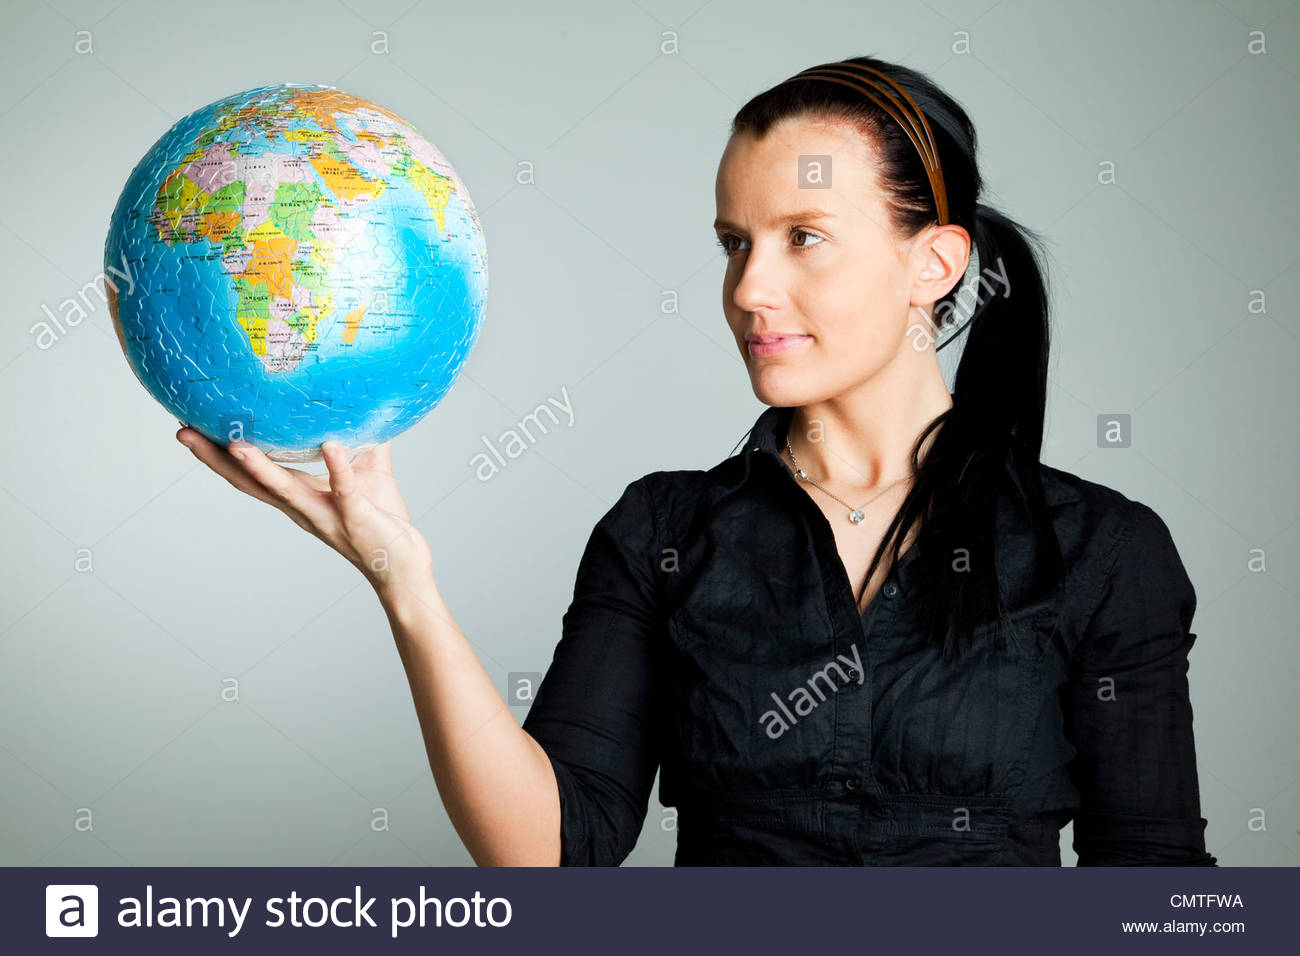 Woman standing with terrestrial globe in her hand - Stock Image